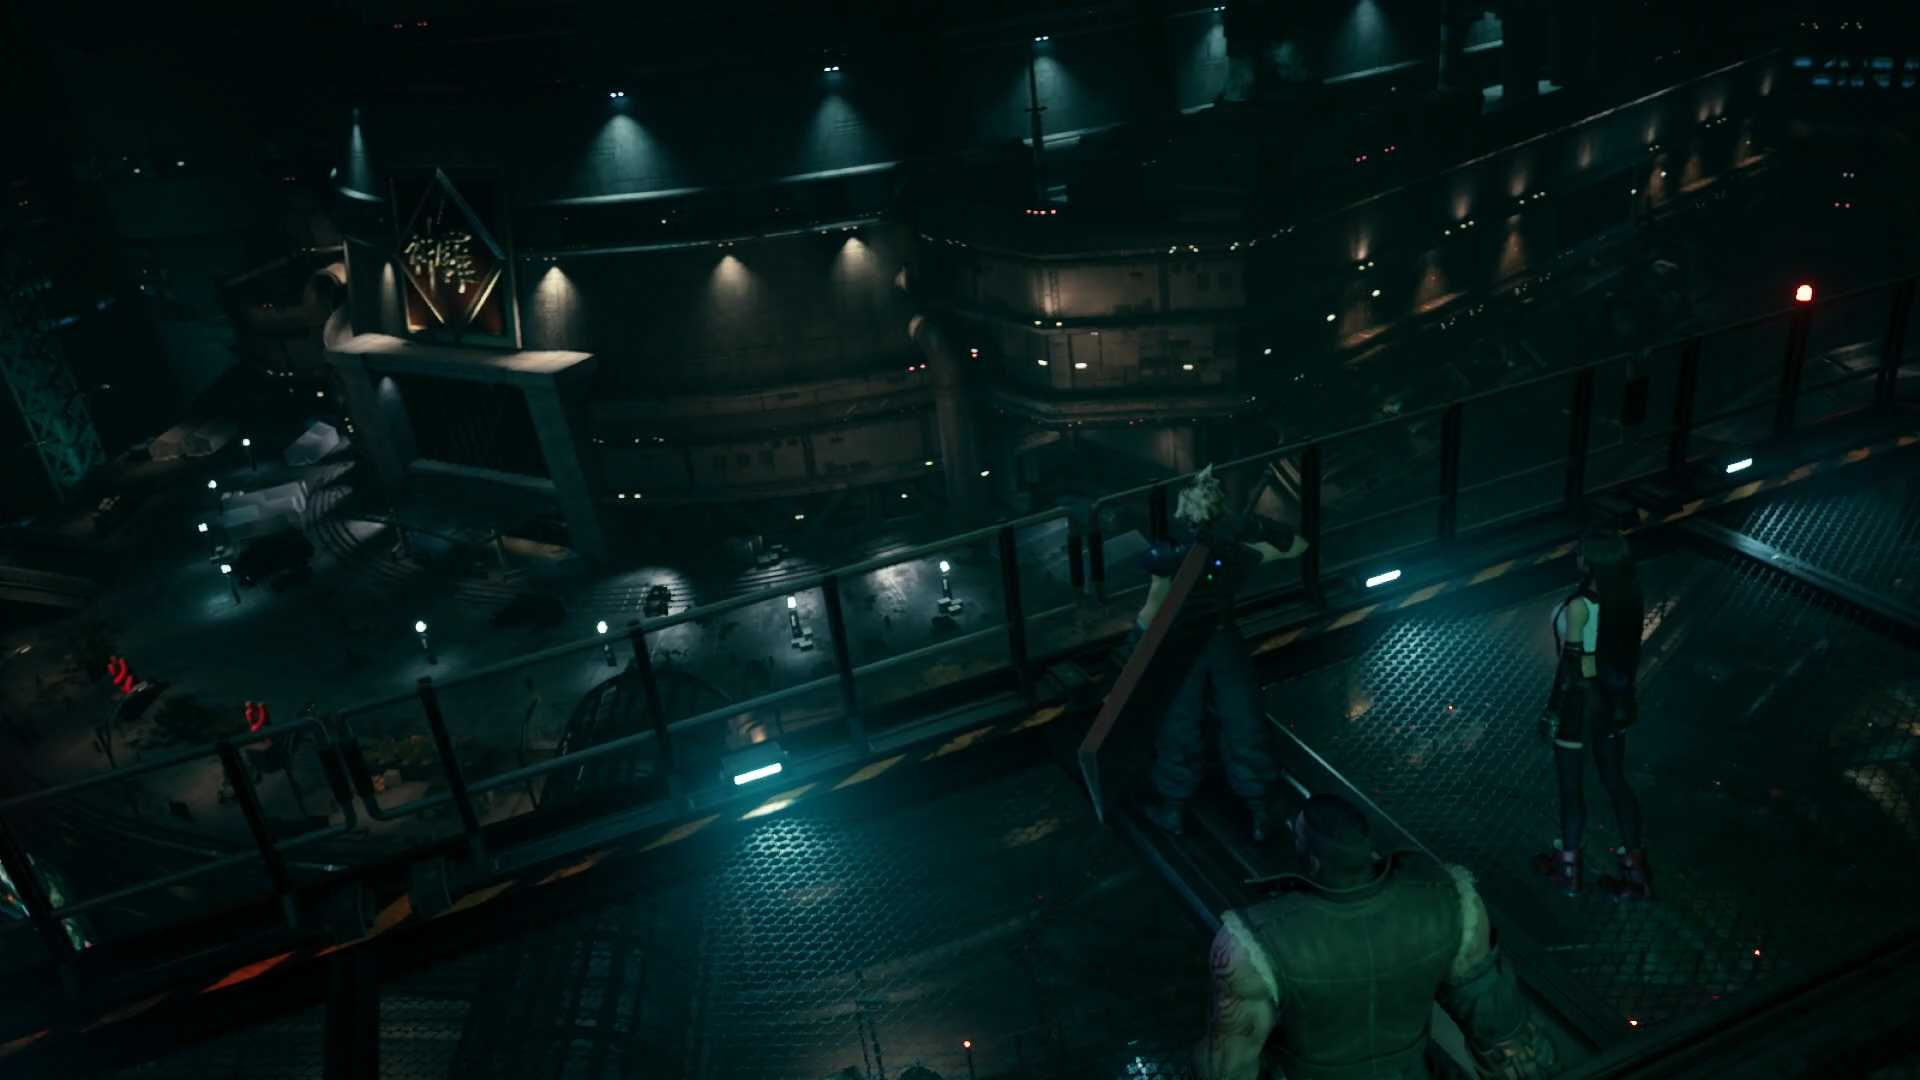 Final Fantasy VII Remake is just getting started, and we can't wait for what comes next.